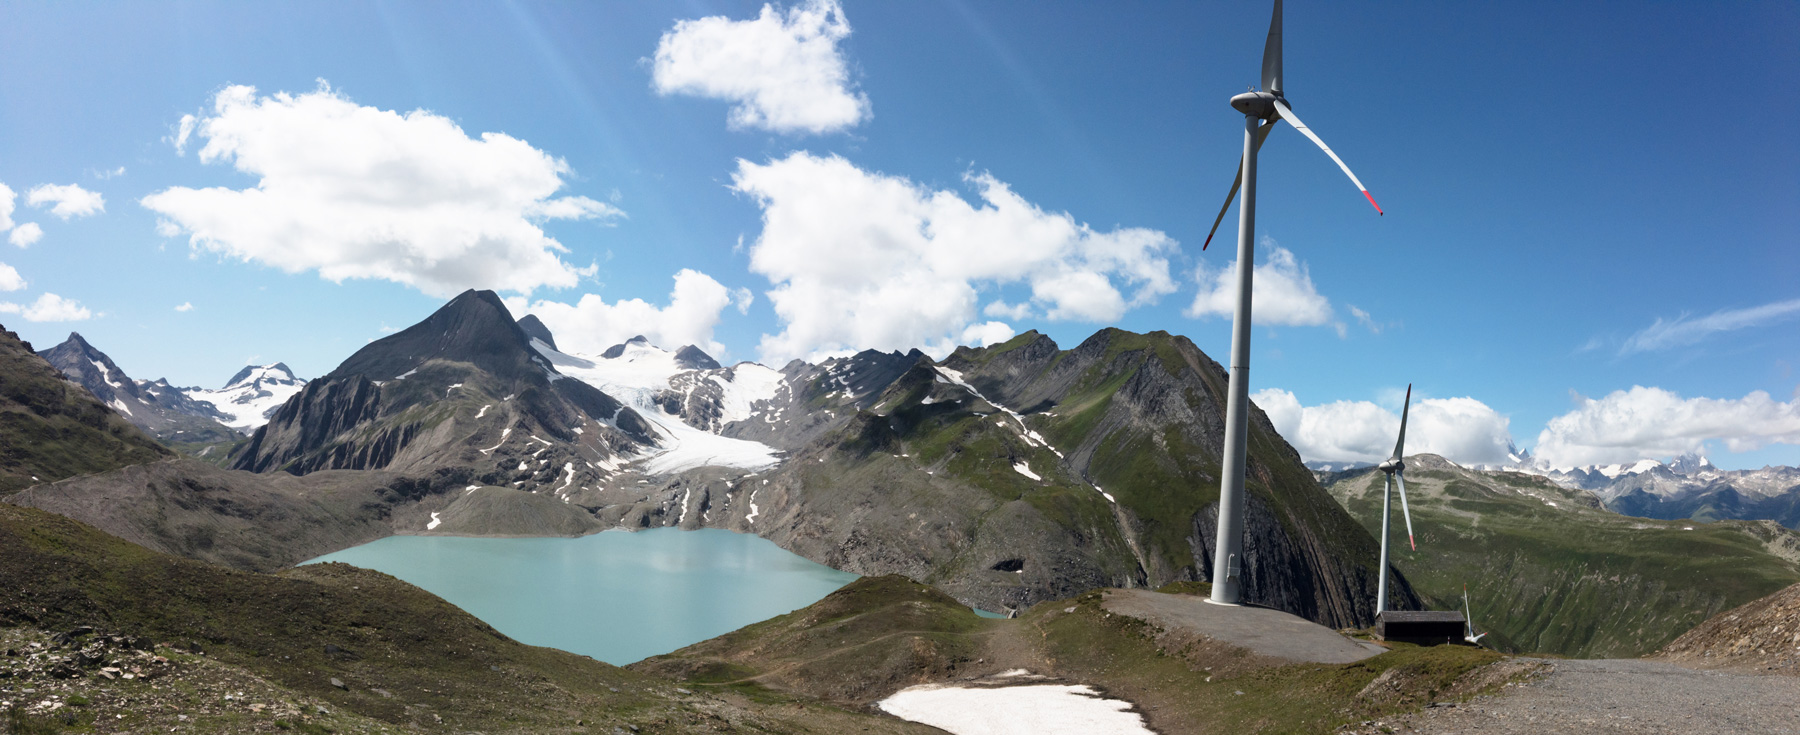 Swissgrid and partners are working on the CBP pilot for FCR